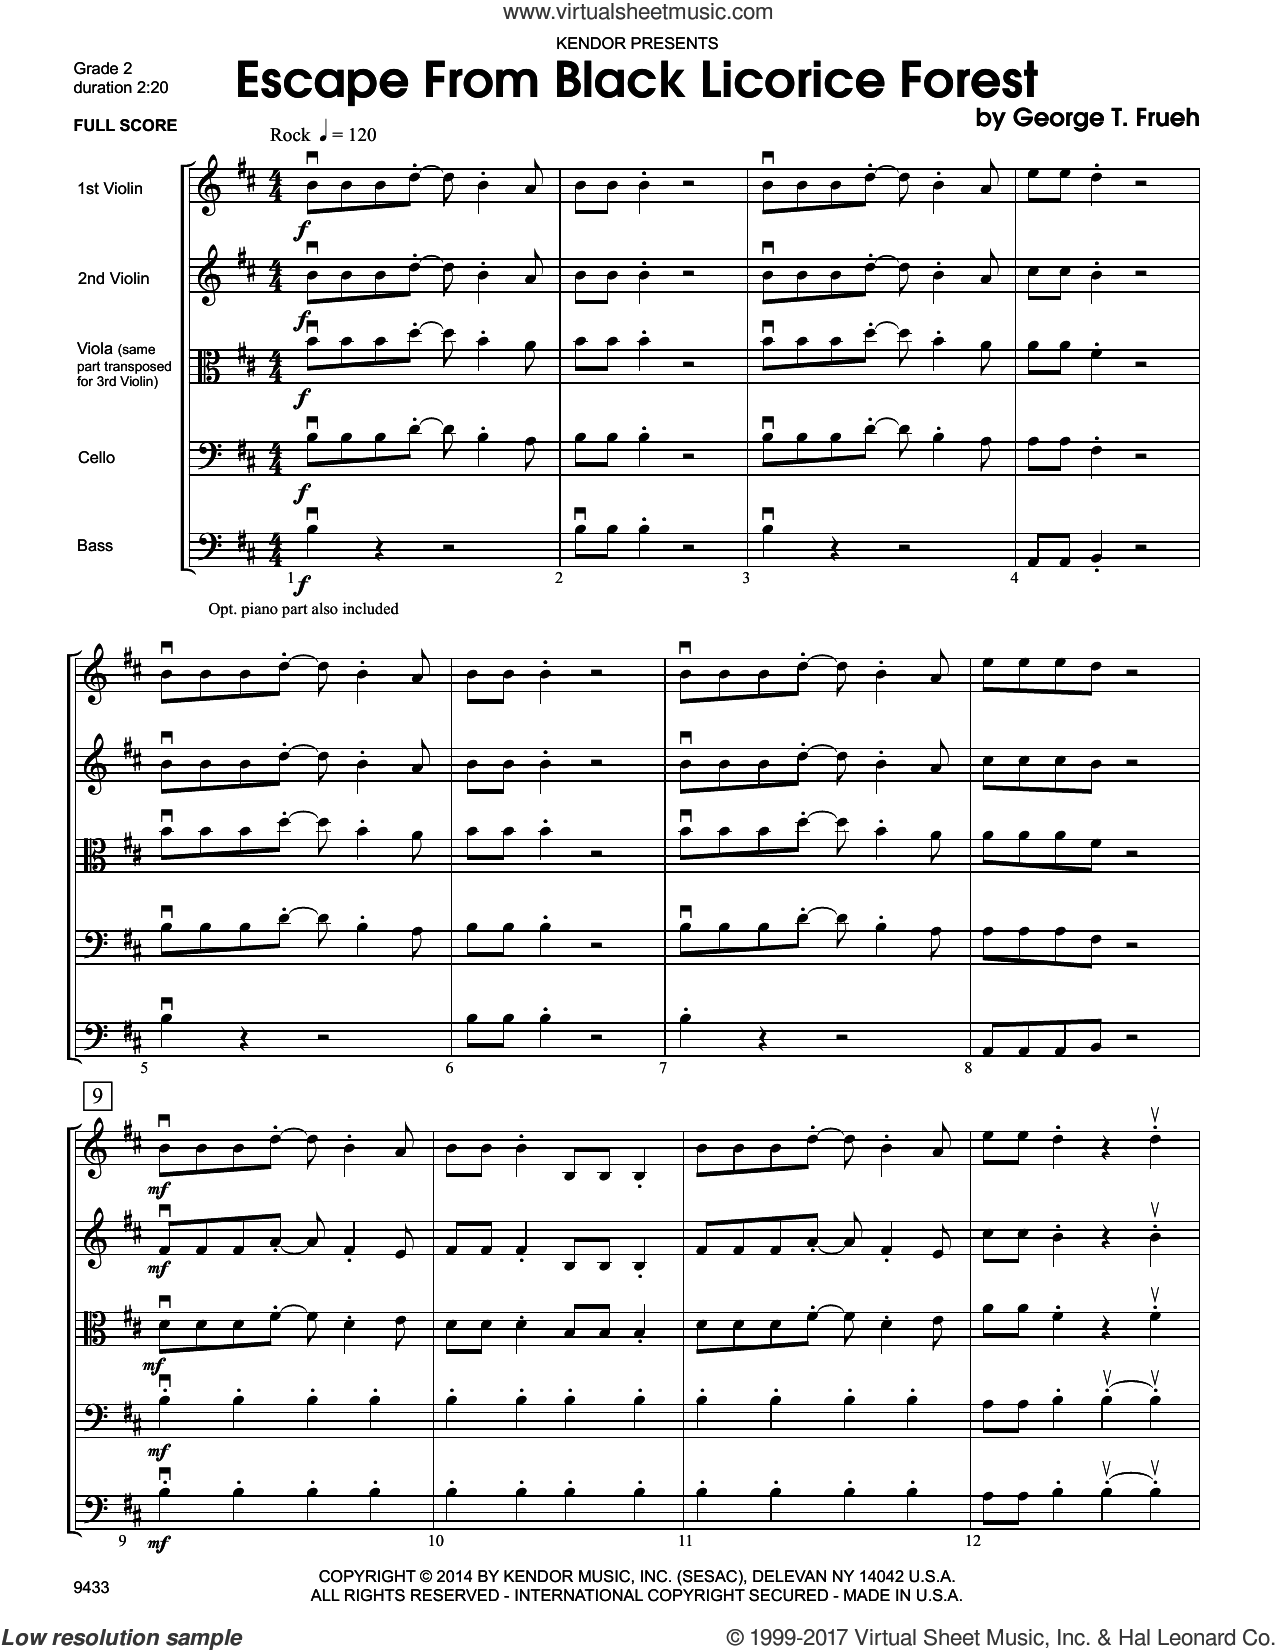 Escape From Black Licorice Forest (COMPLETE) sheet music for orchestra by George T. Frueh, intermediate skill level